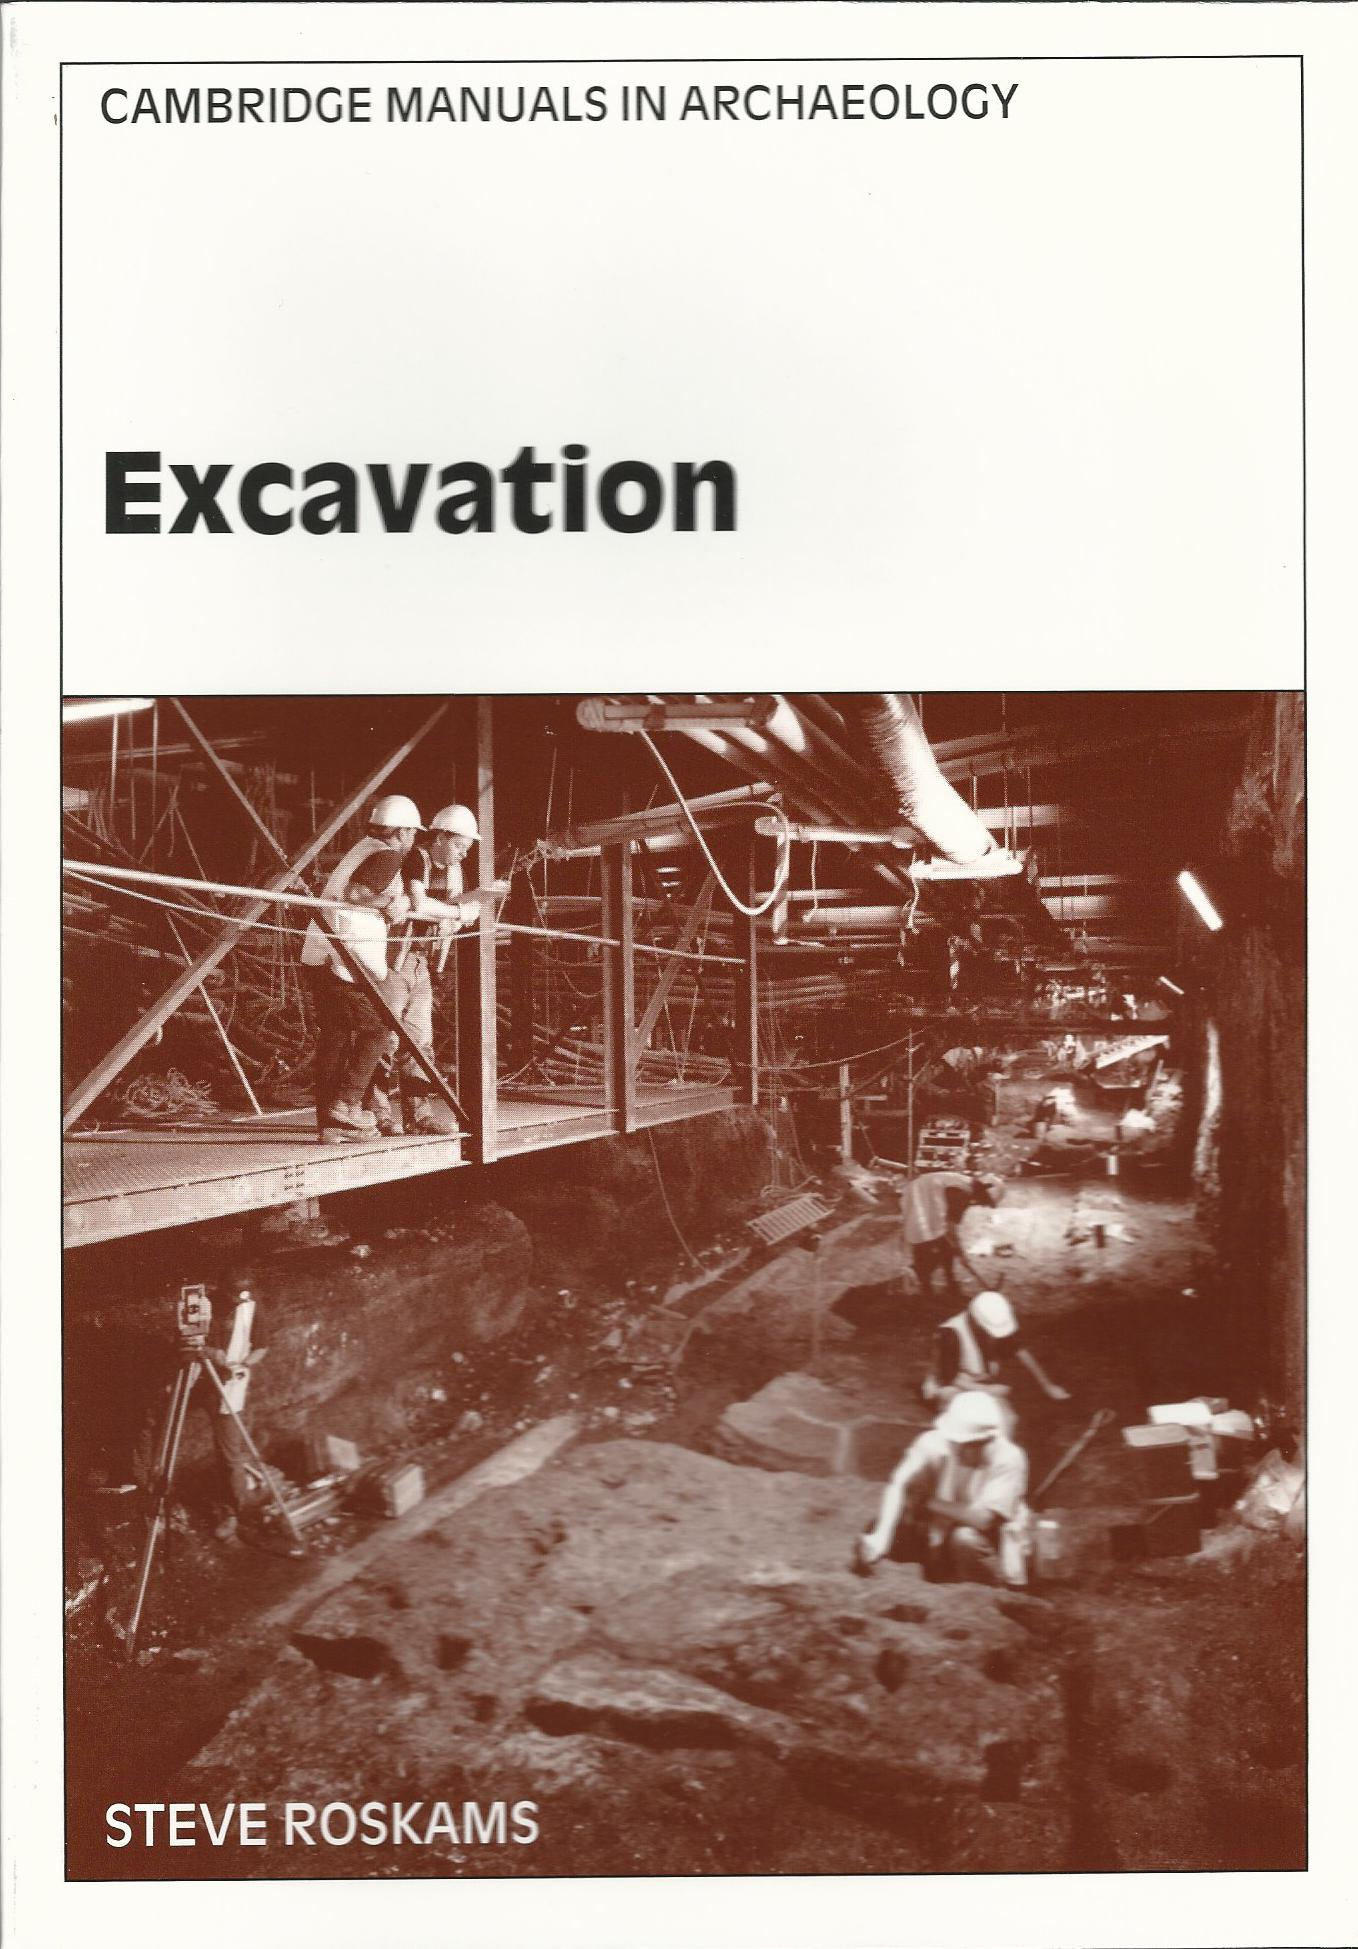 Image for Excavation (Cambridge Manuals in Archaeology)